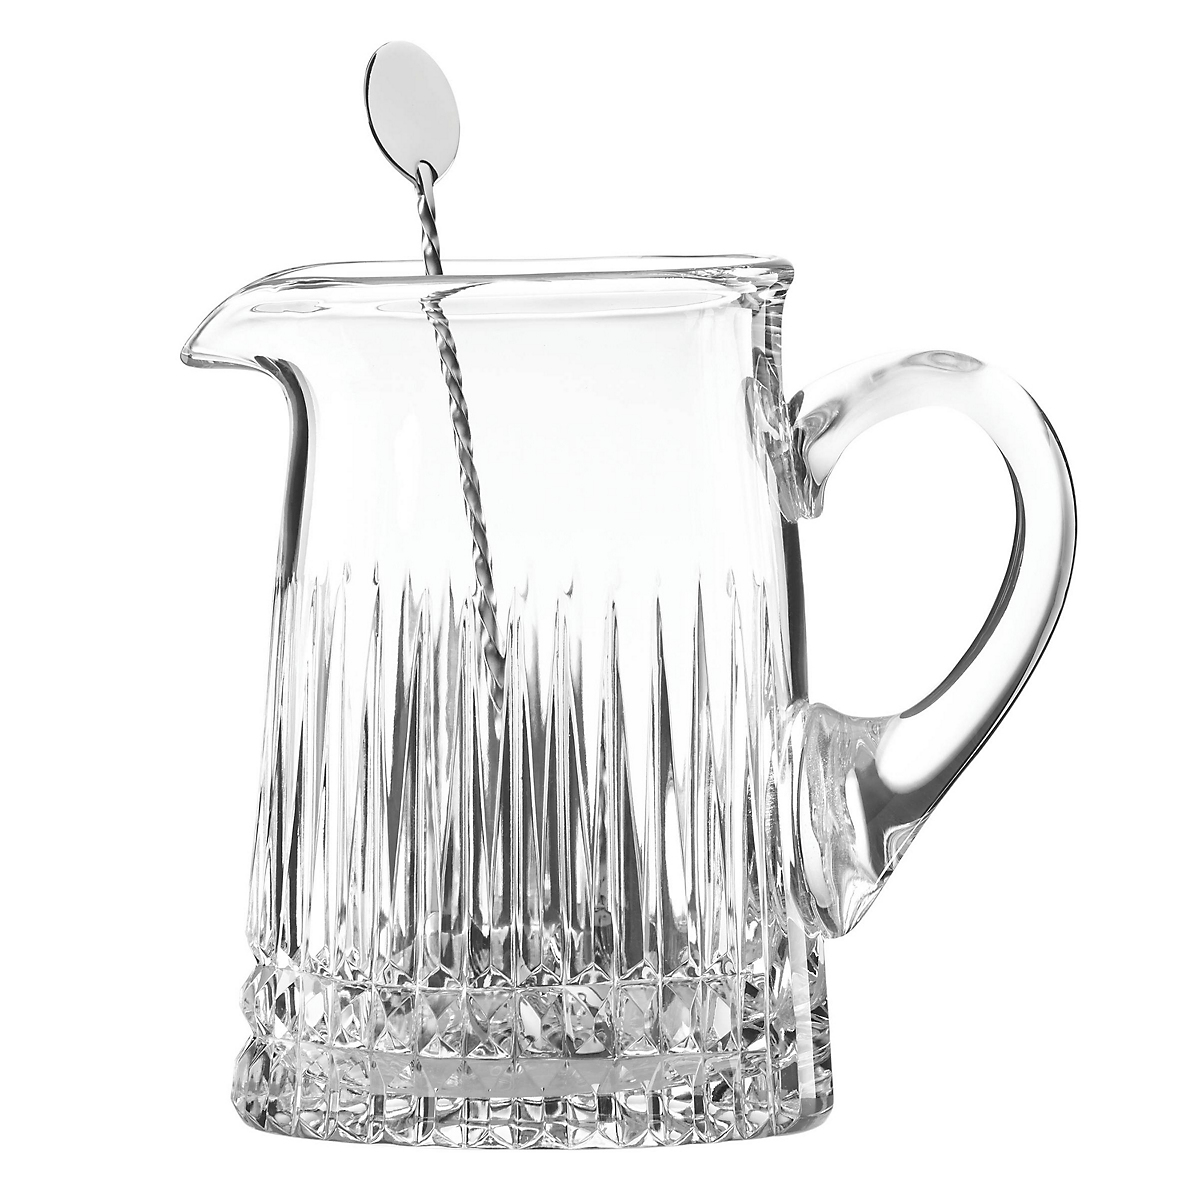 Thomas O'Brien Benson Pitcher & Stirrer Set